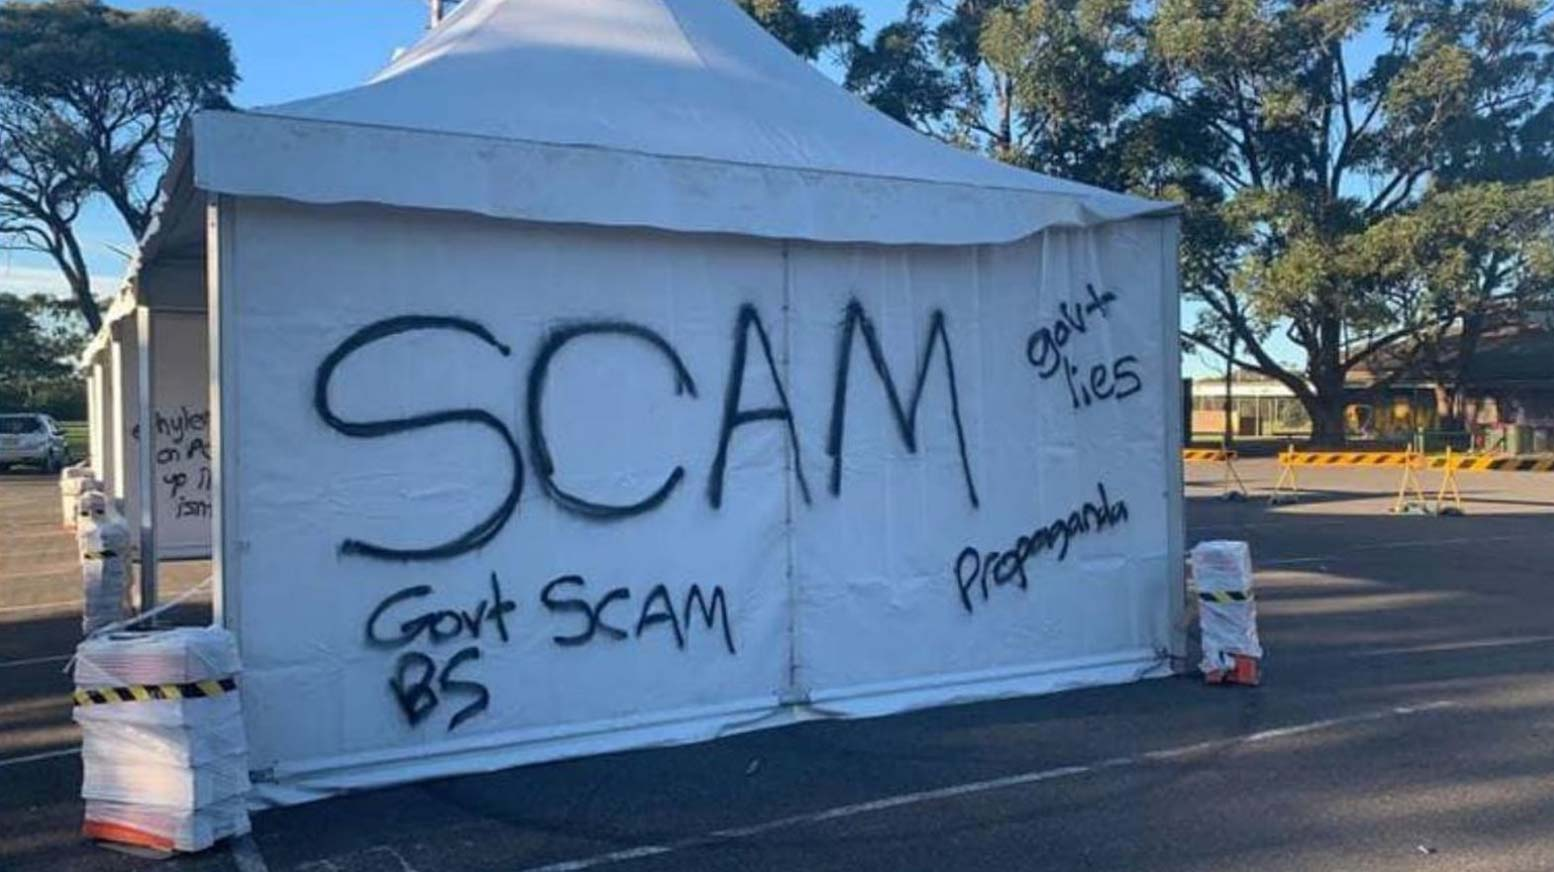 A pop-up COVID-19 testing site in Sydney's south has been targeted by vandals, calling the pandemic a government scam. (Facebook Diedree Steinwell)